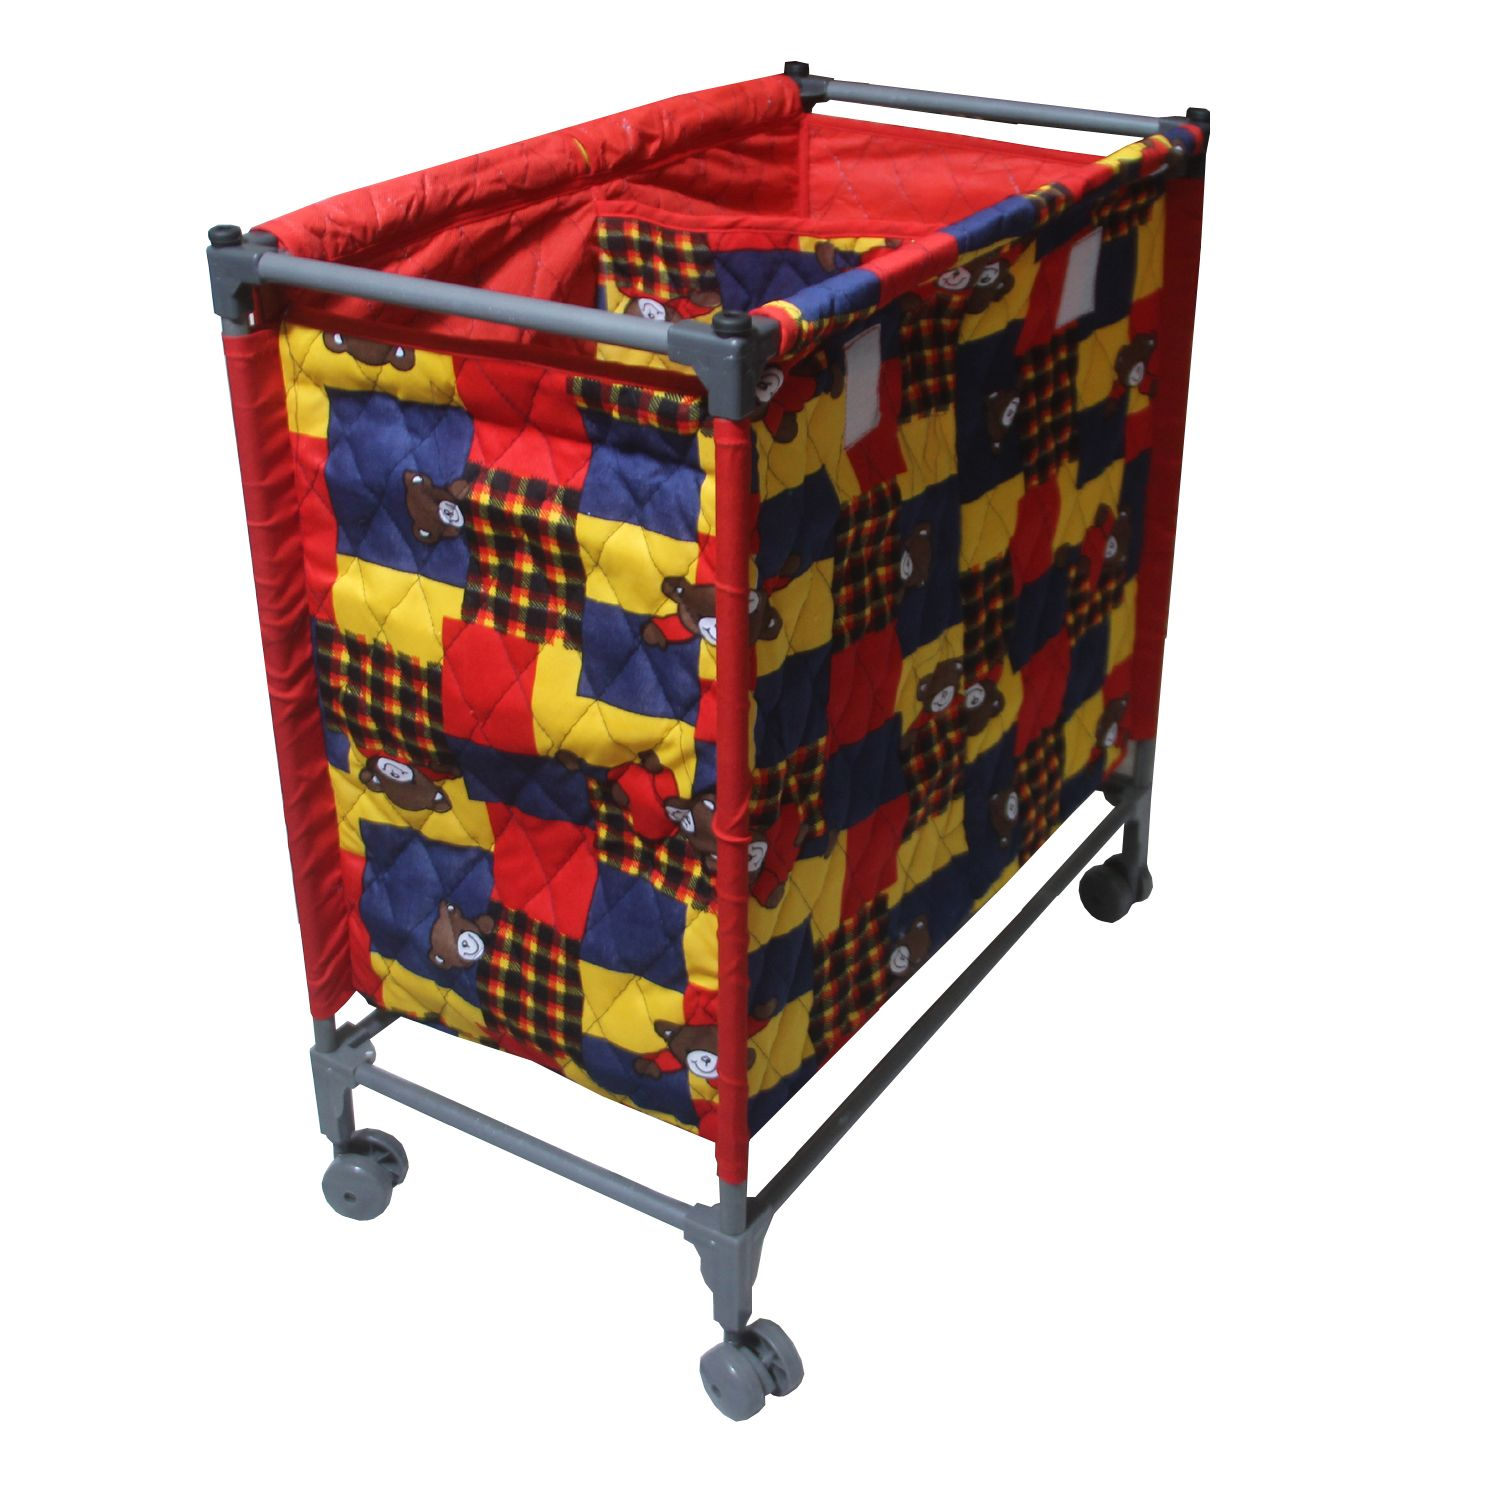 Kuber Industries™ This and That Basket Duo, Space Saving and Portable - Laundry Basket with Wheels, Size: 68x64x34 cm - Set of 1 Pc (Multi-checkered) Portlb03